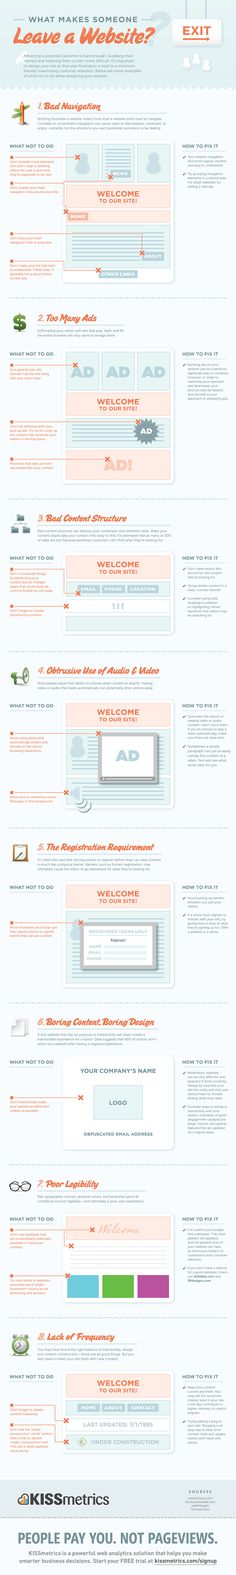 INFOGRAPHIC: What makes someone leave a website?